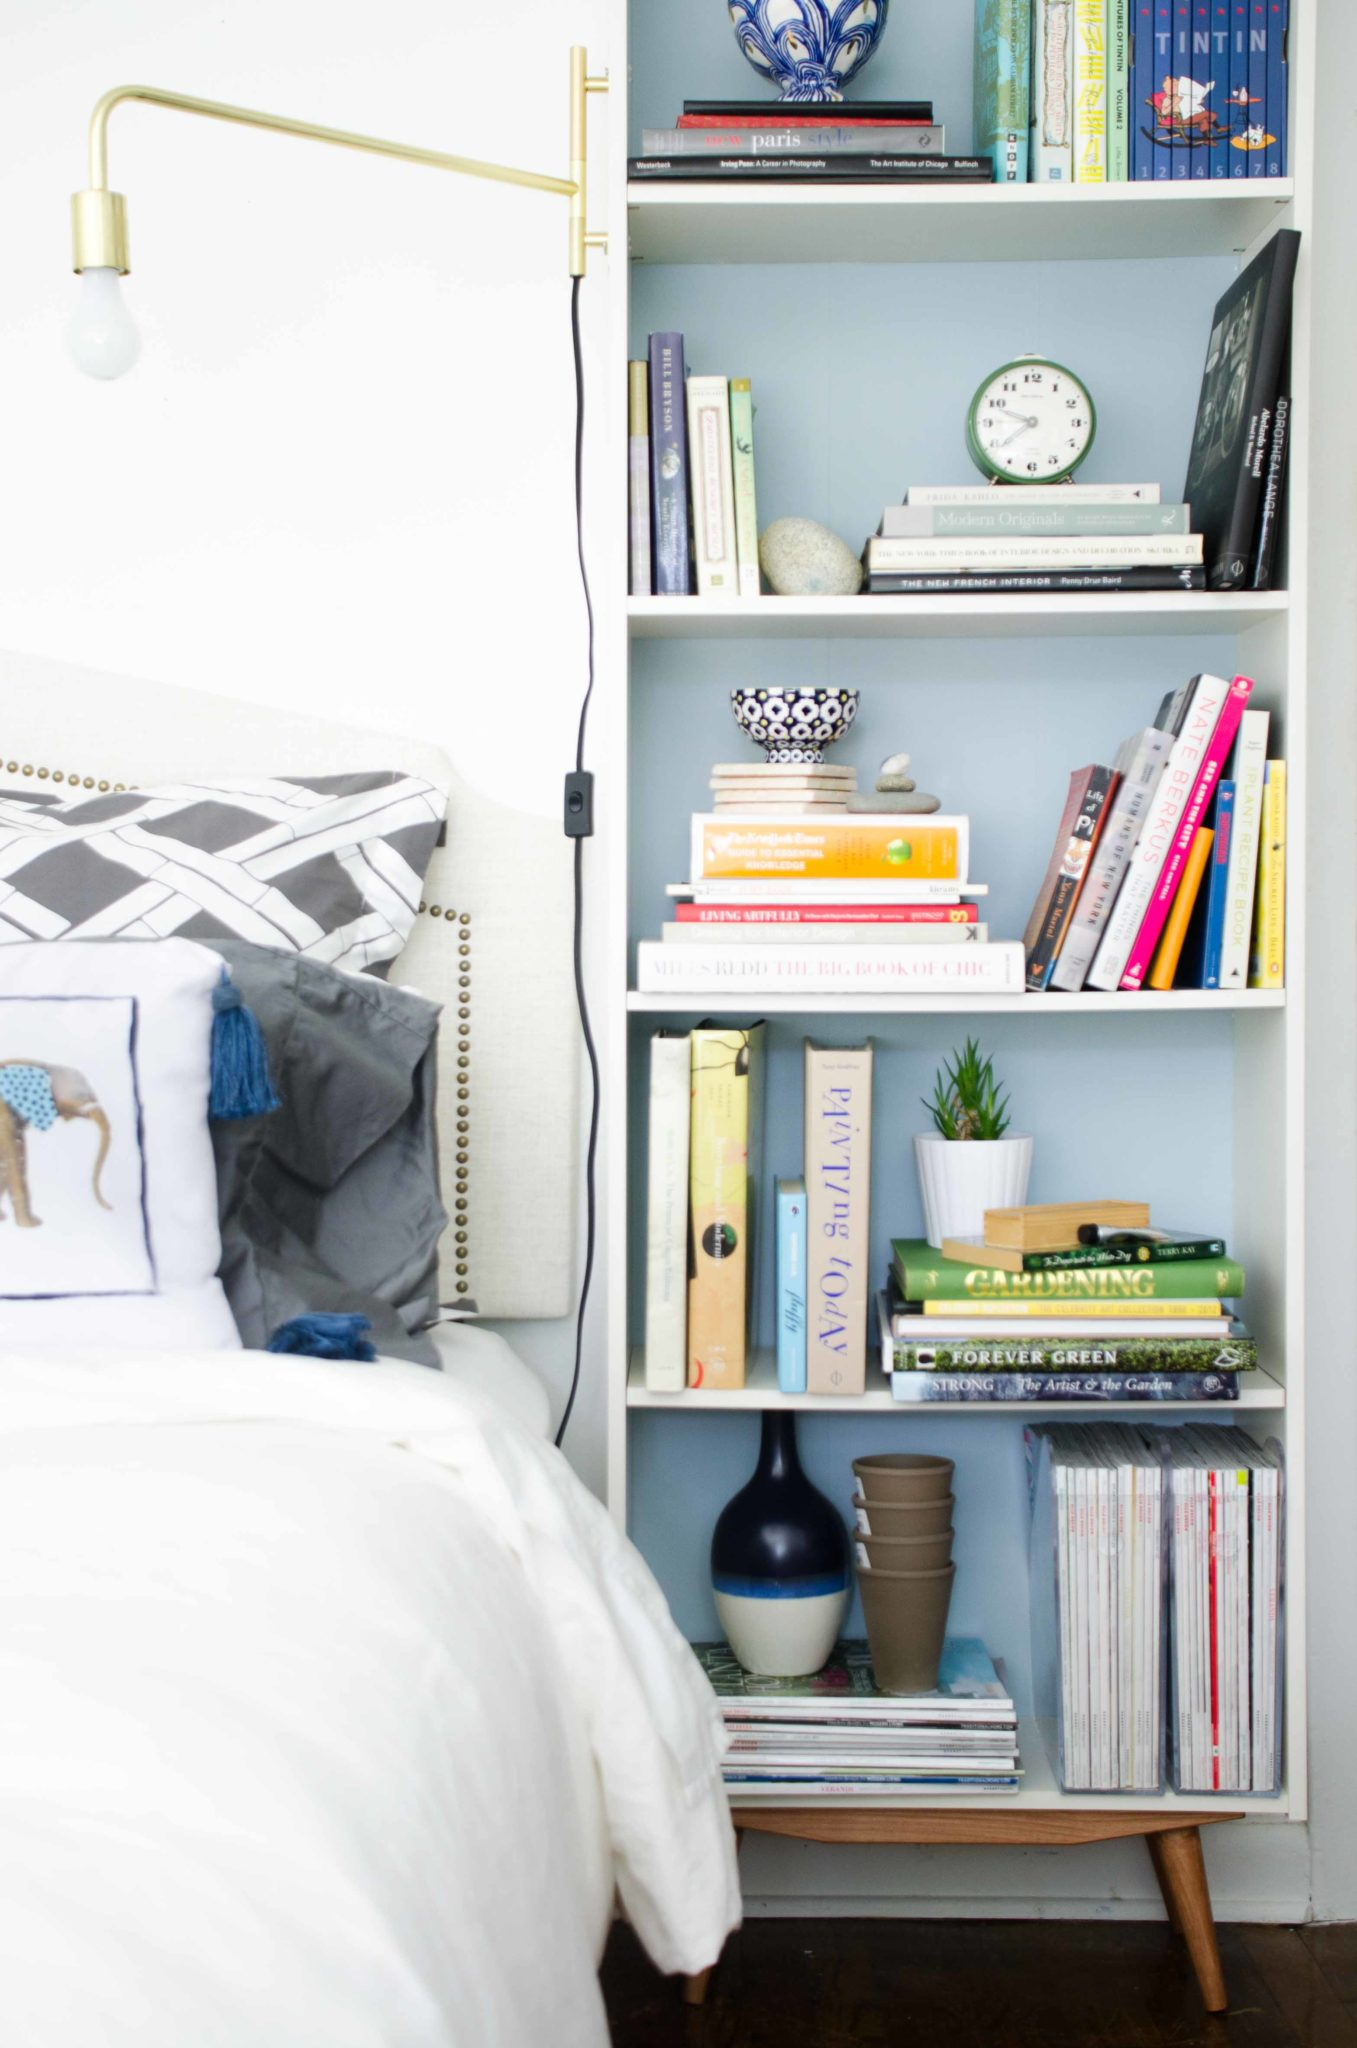 Mid-century bookcase with brass swing-arm sconce in a modern bedroom.